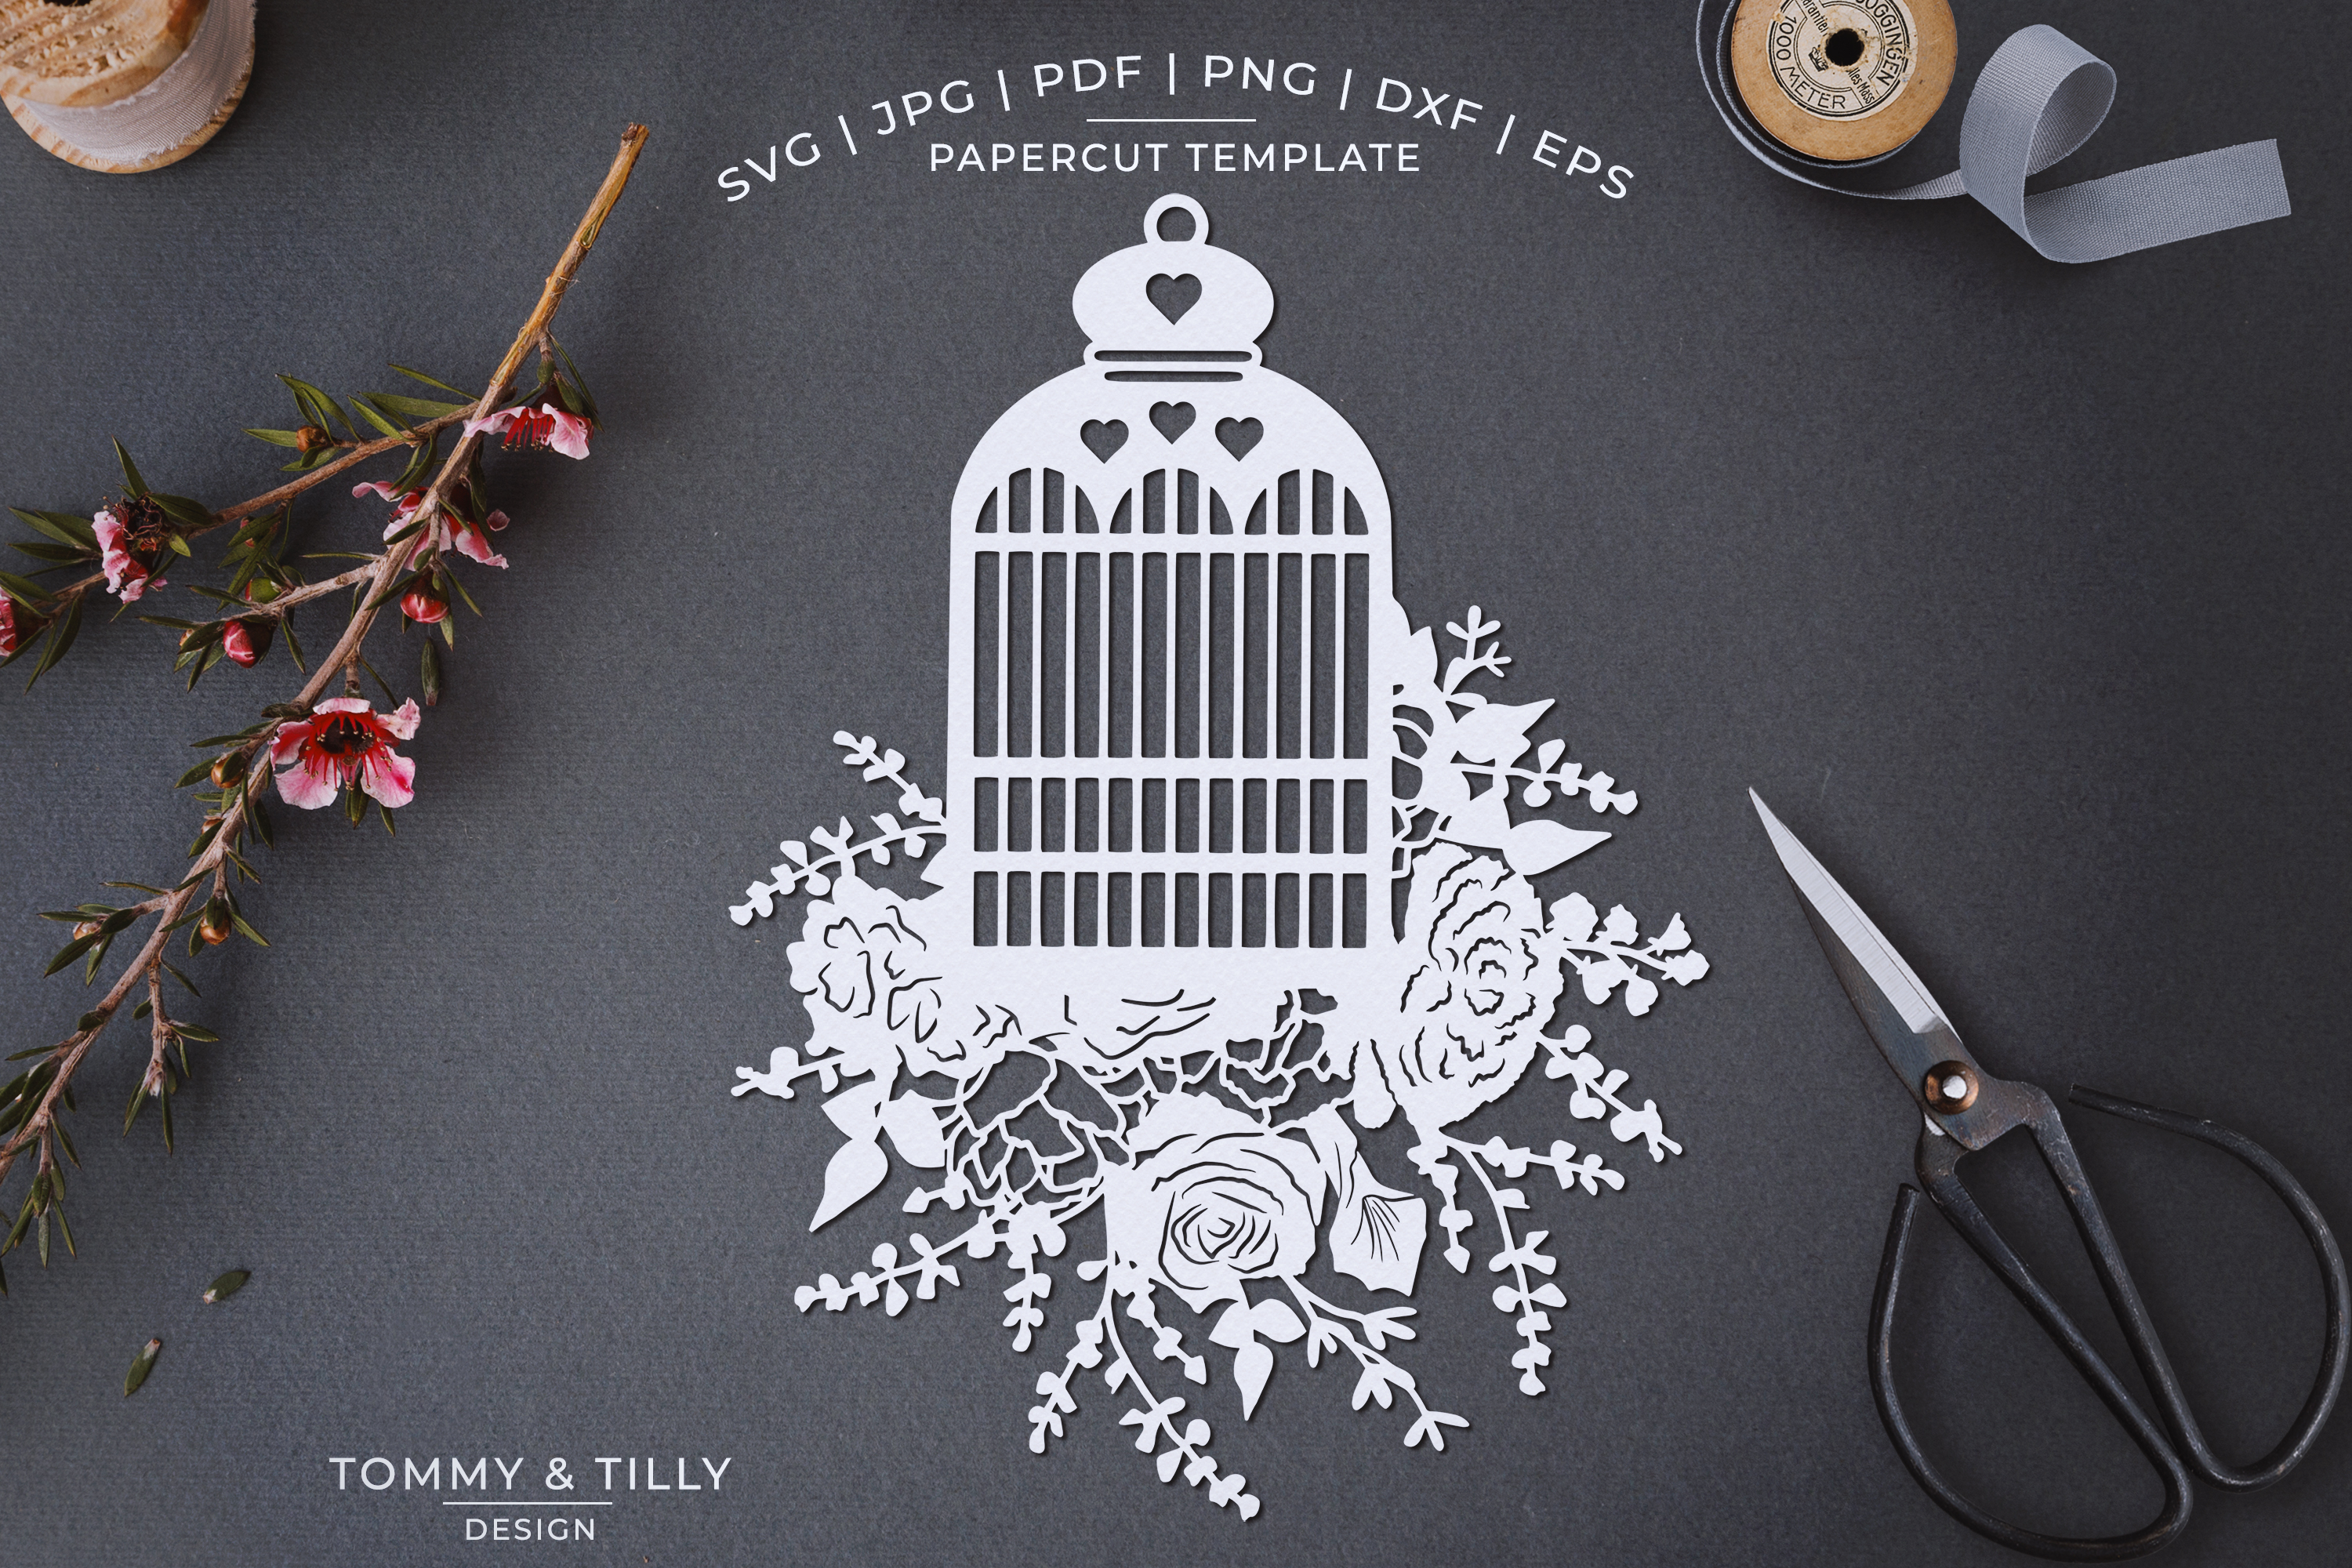 Romantic Floral Birdcage - Papercut Template SVG JPG PNG example image 1